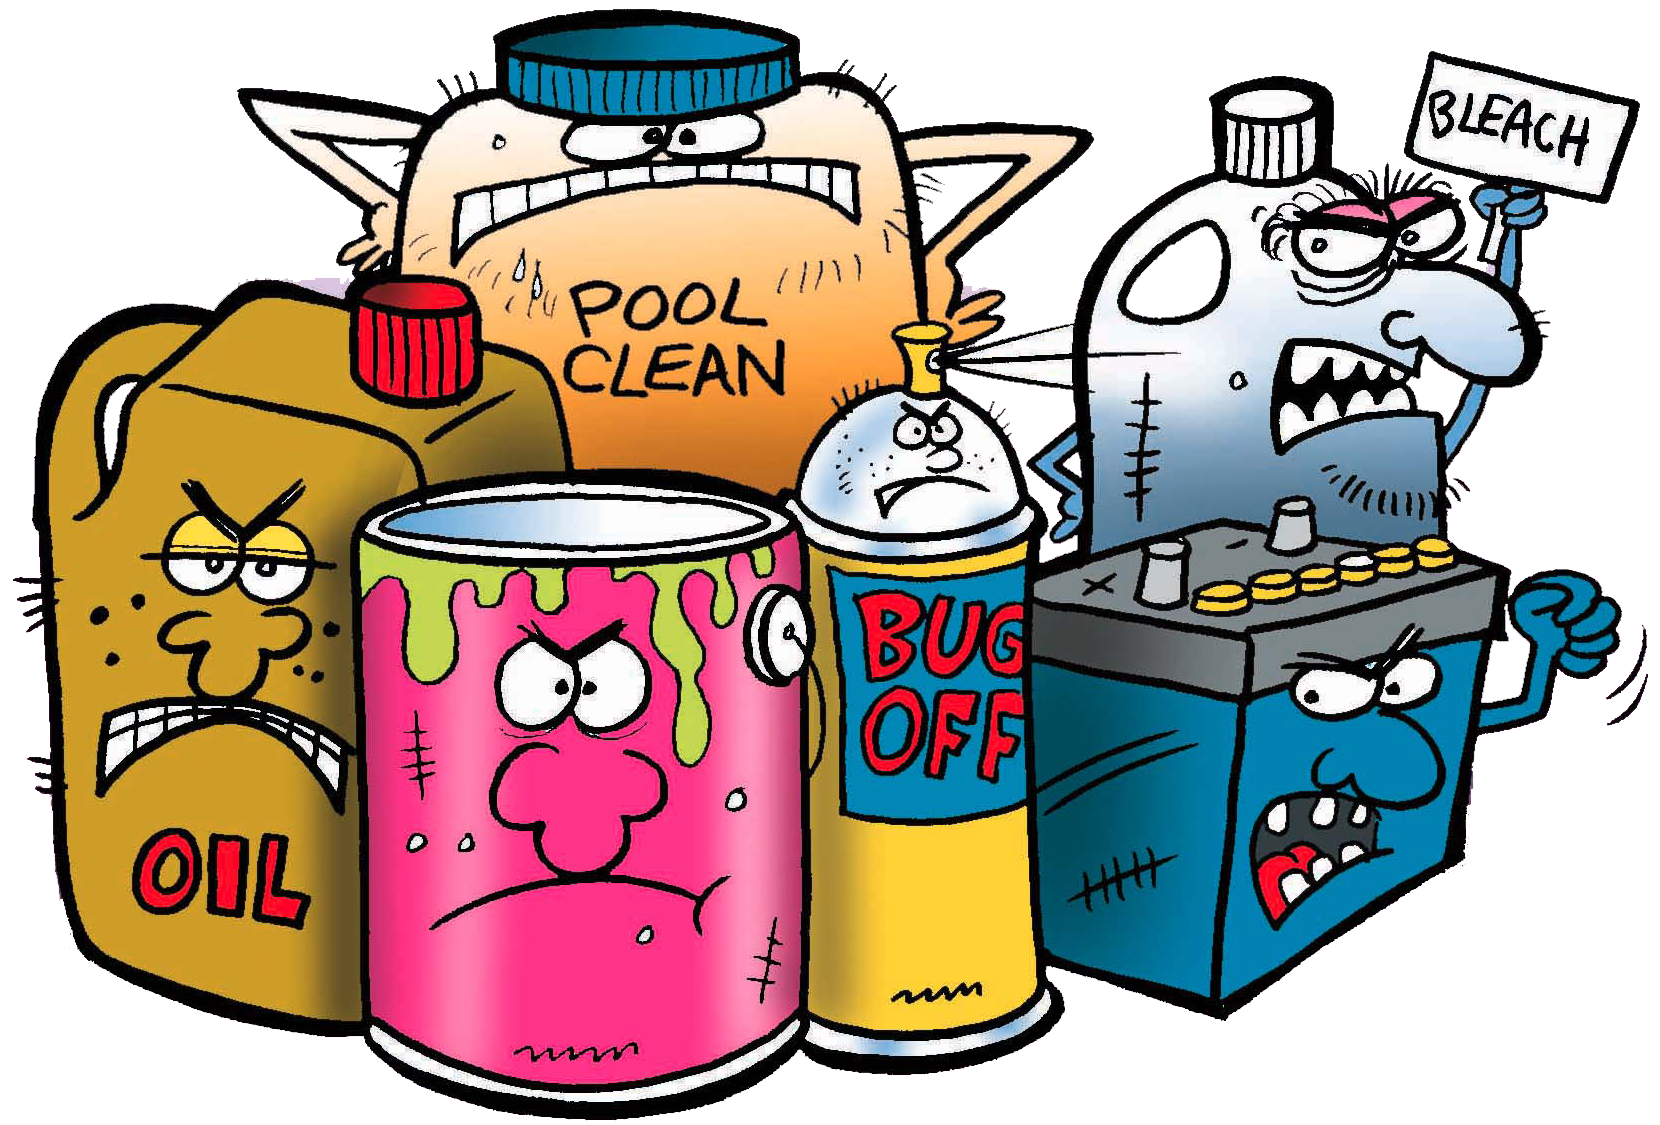 freeuse download Chemicals clipart safe. Silver creek fire department.